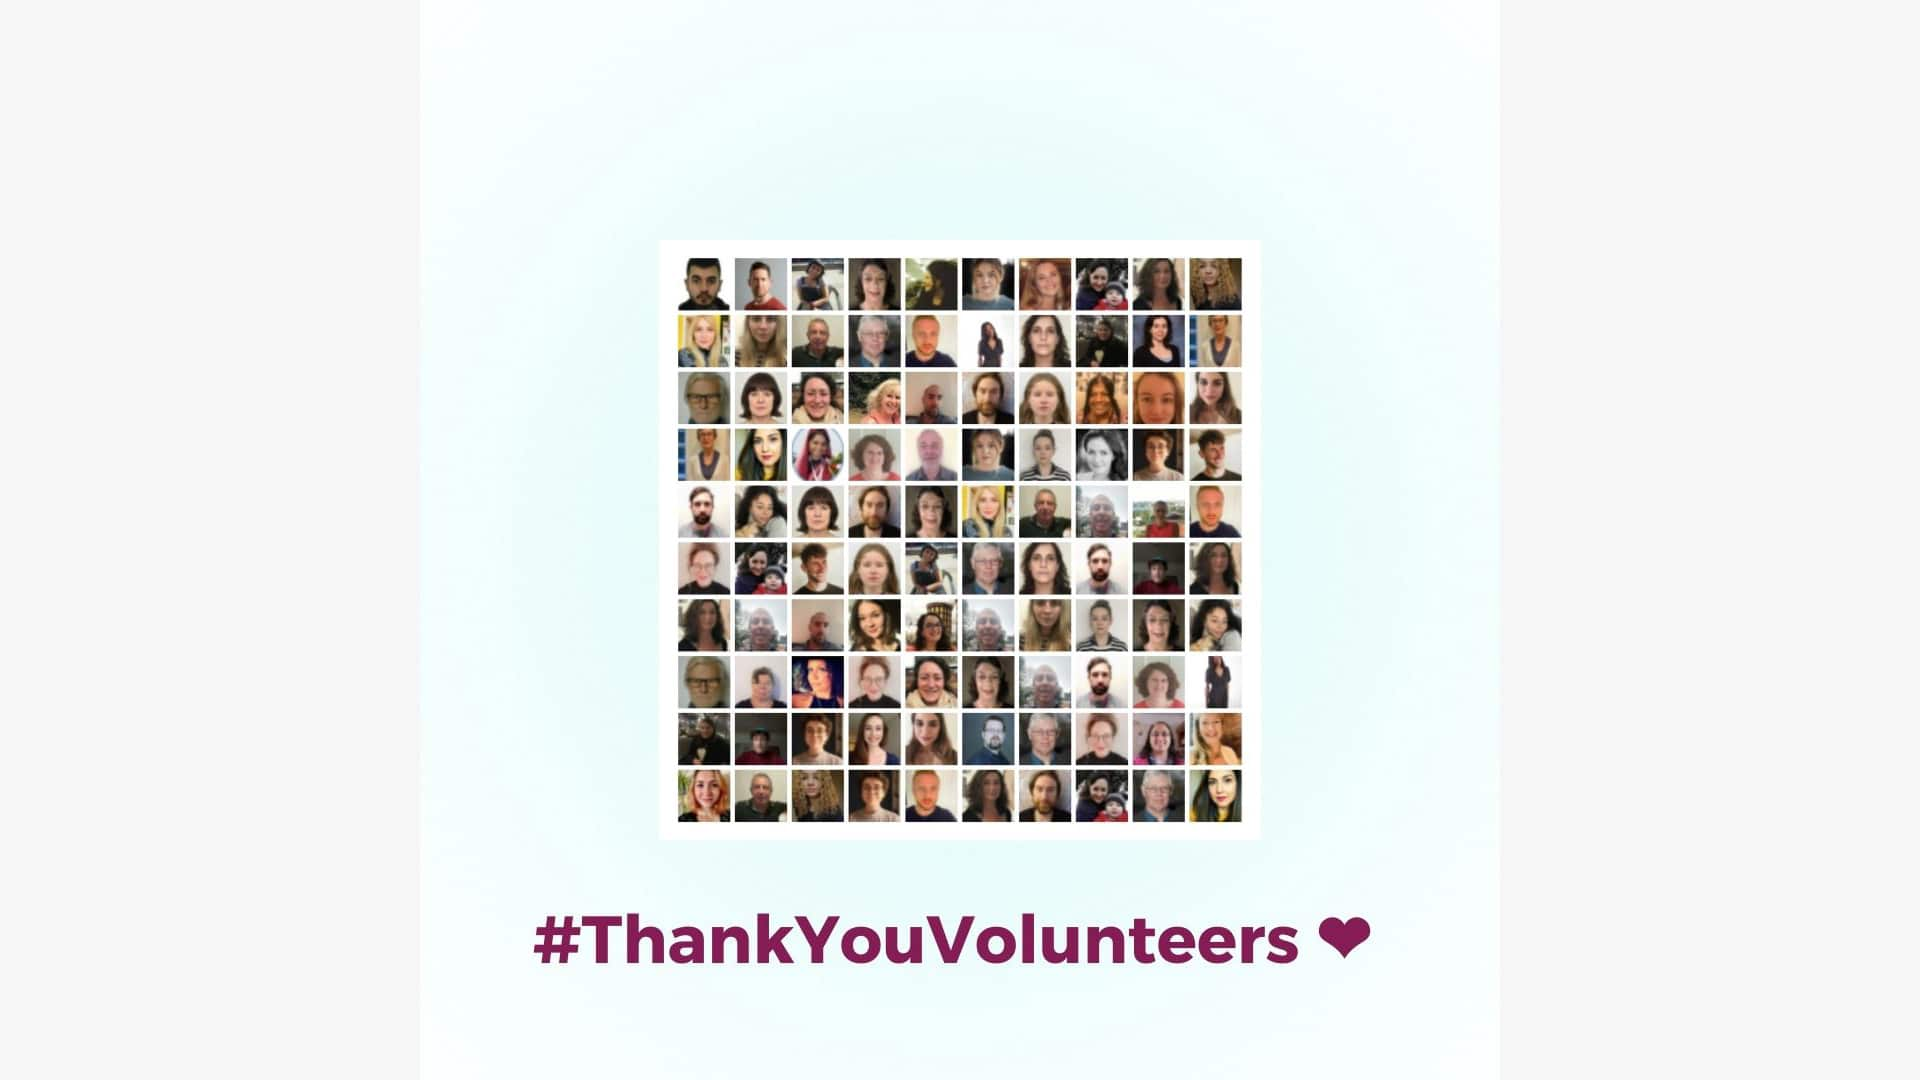 A grid of lots of small headshots with the hashtag #ThankYouVolunteers